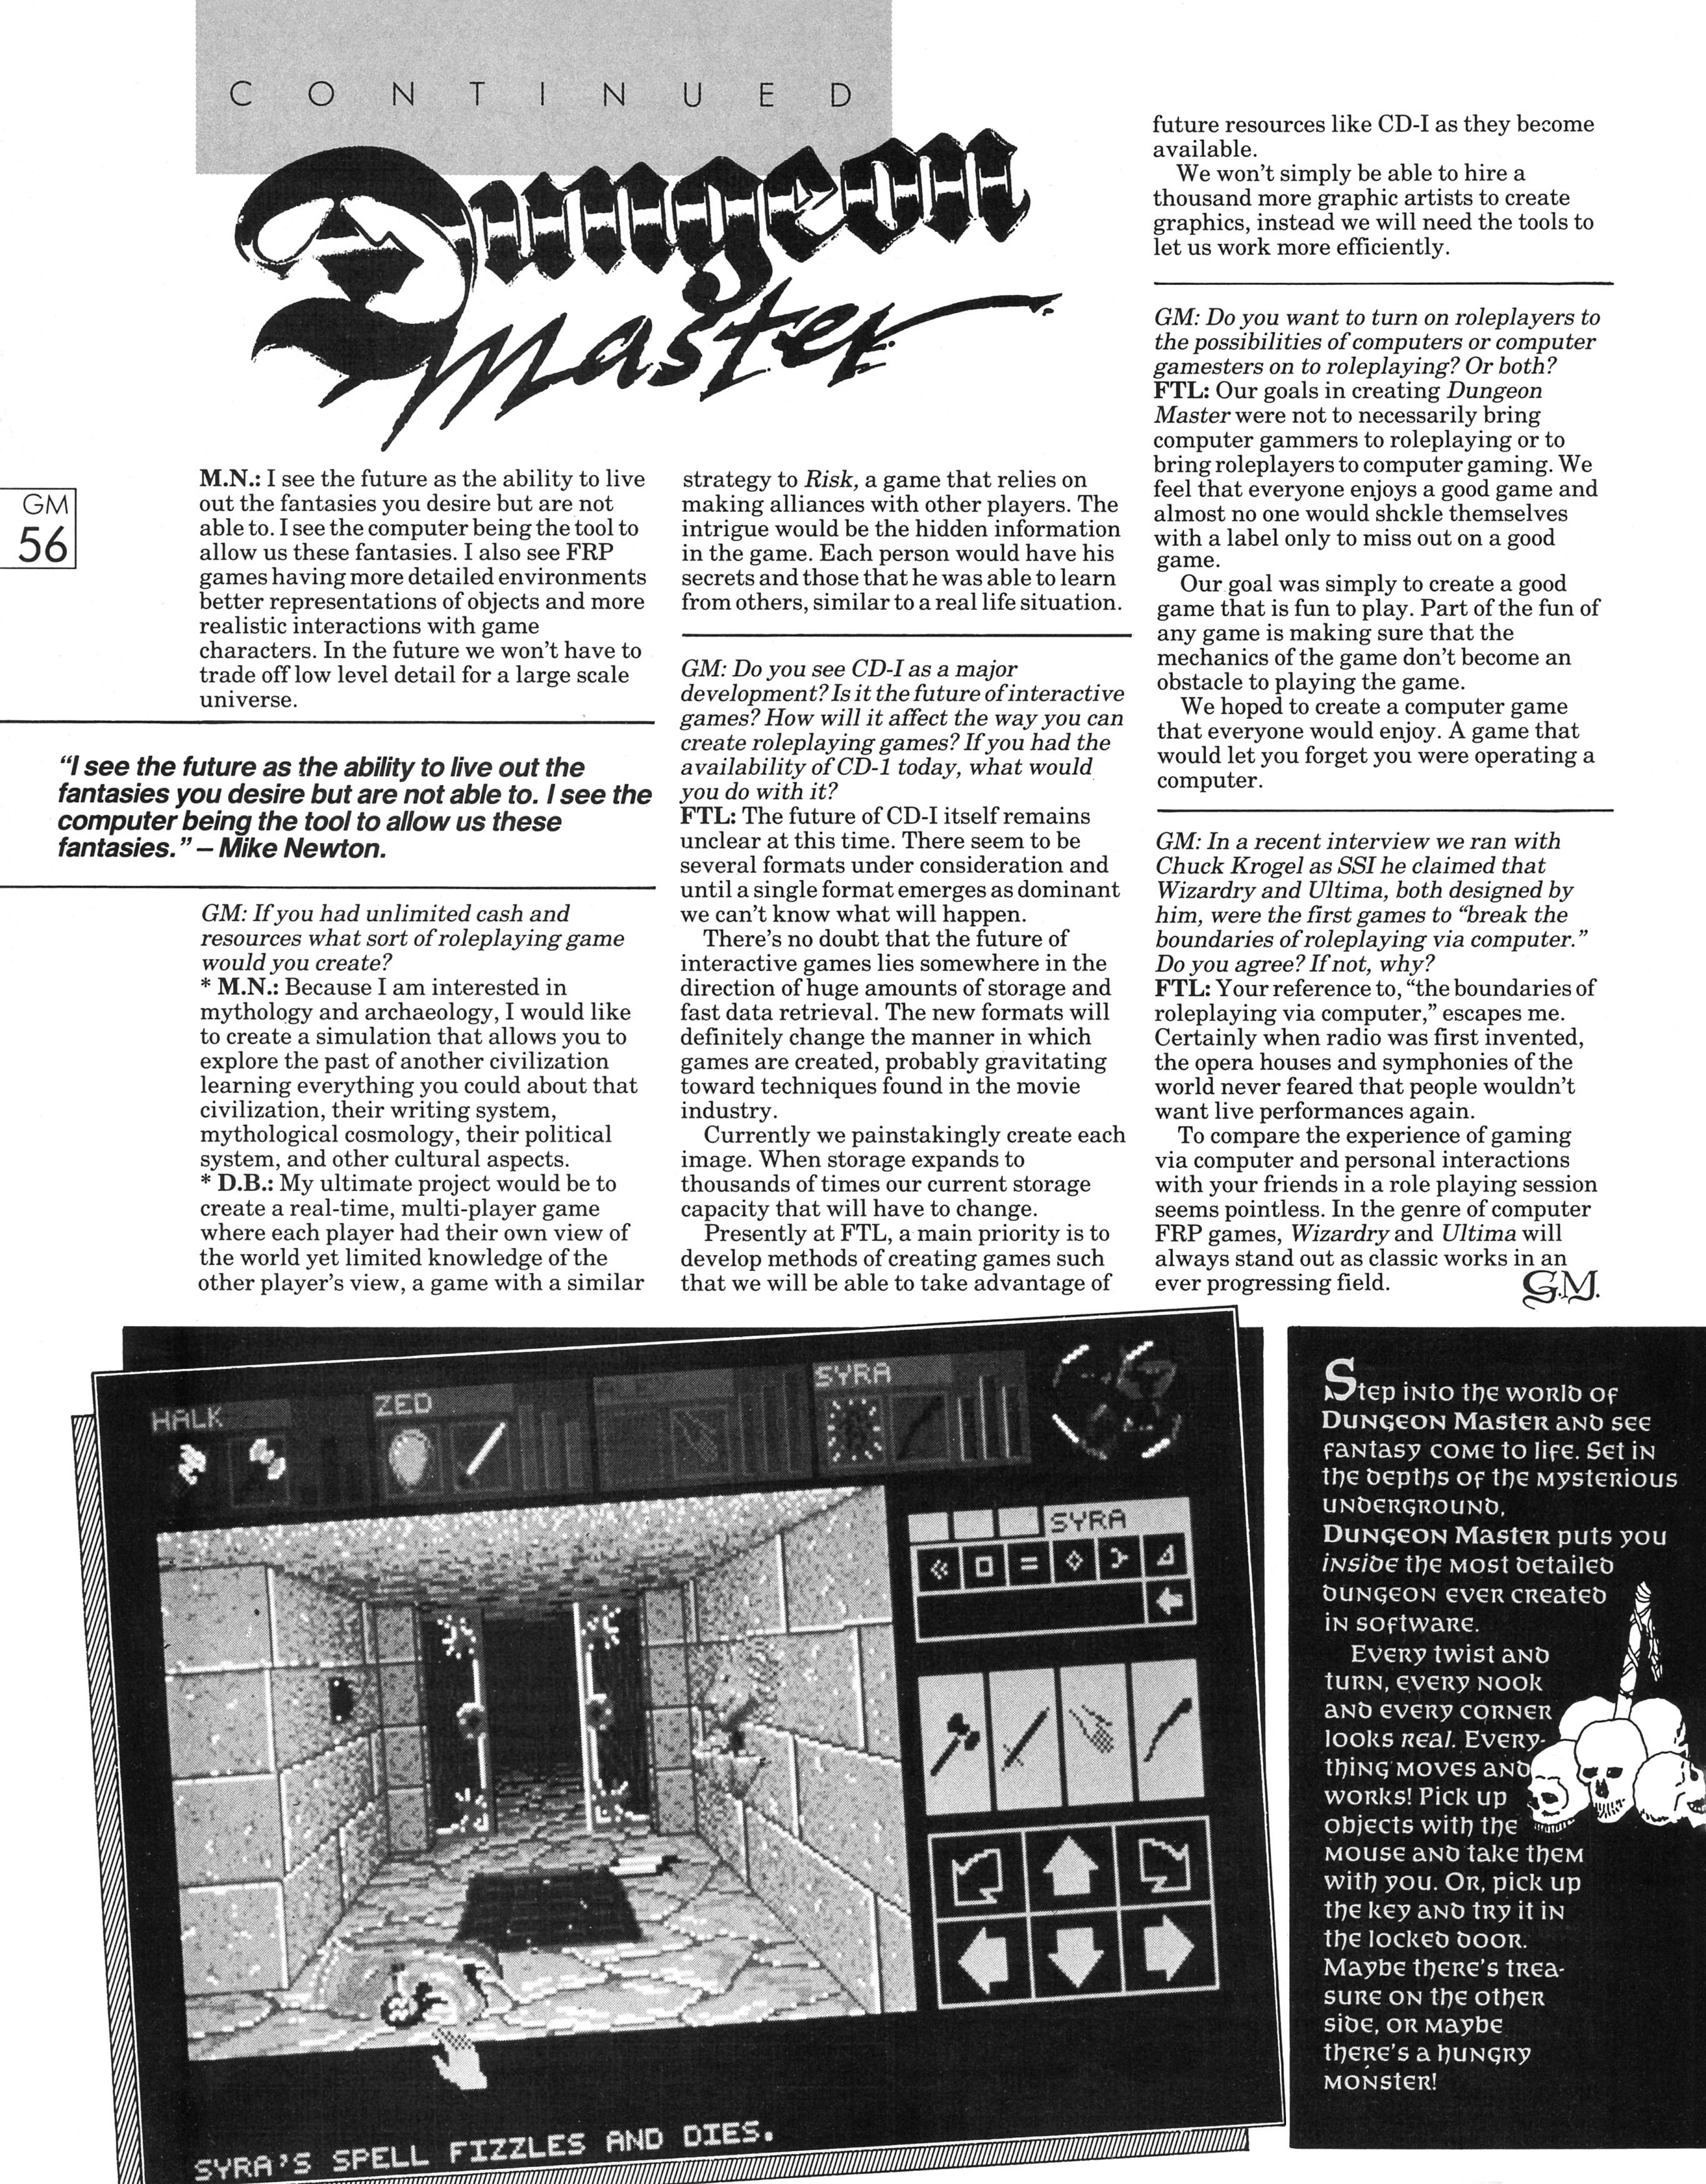 FTL Interview published in British magazine 'Game Master', Vol 1 No 3 November 1988, Page 56